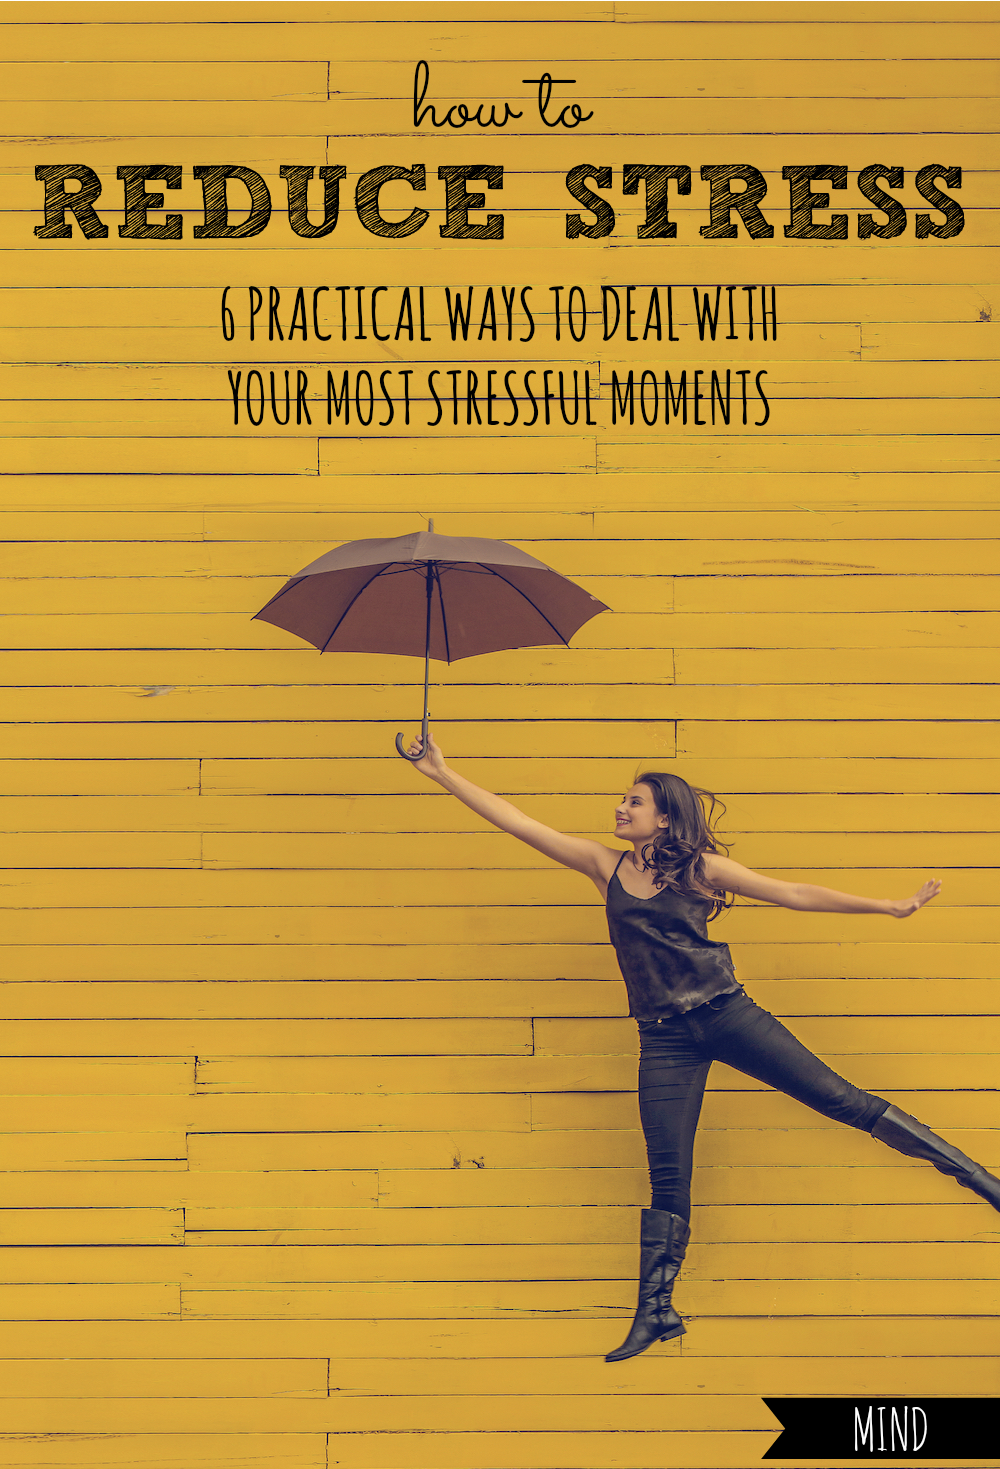 Looking for ways to reduce stress? Here are 6 practical solutions for stressful moments TODAY, plus a link to a free guide with more stress management ideas! #reduce #stress #management #stressed #out #stressful #stressors #relief #reliever #peace #breathing #exercises #nature #sounds #music #therapy #exercise #pray #prayer #prayers #meditate #meditation